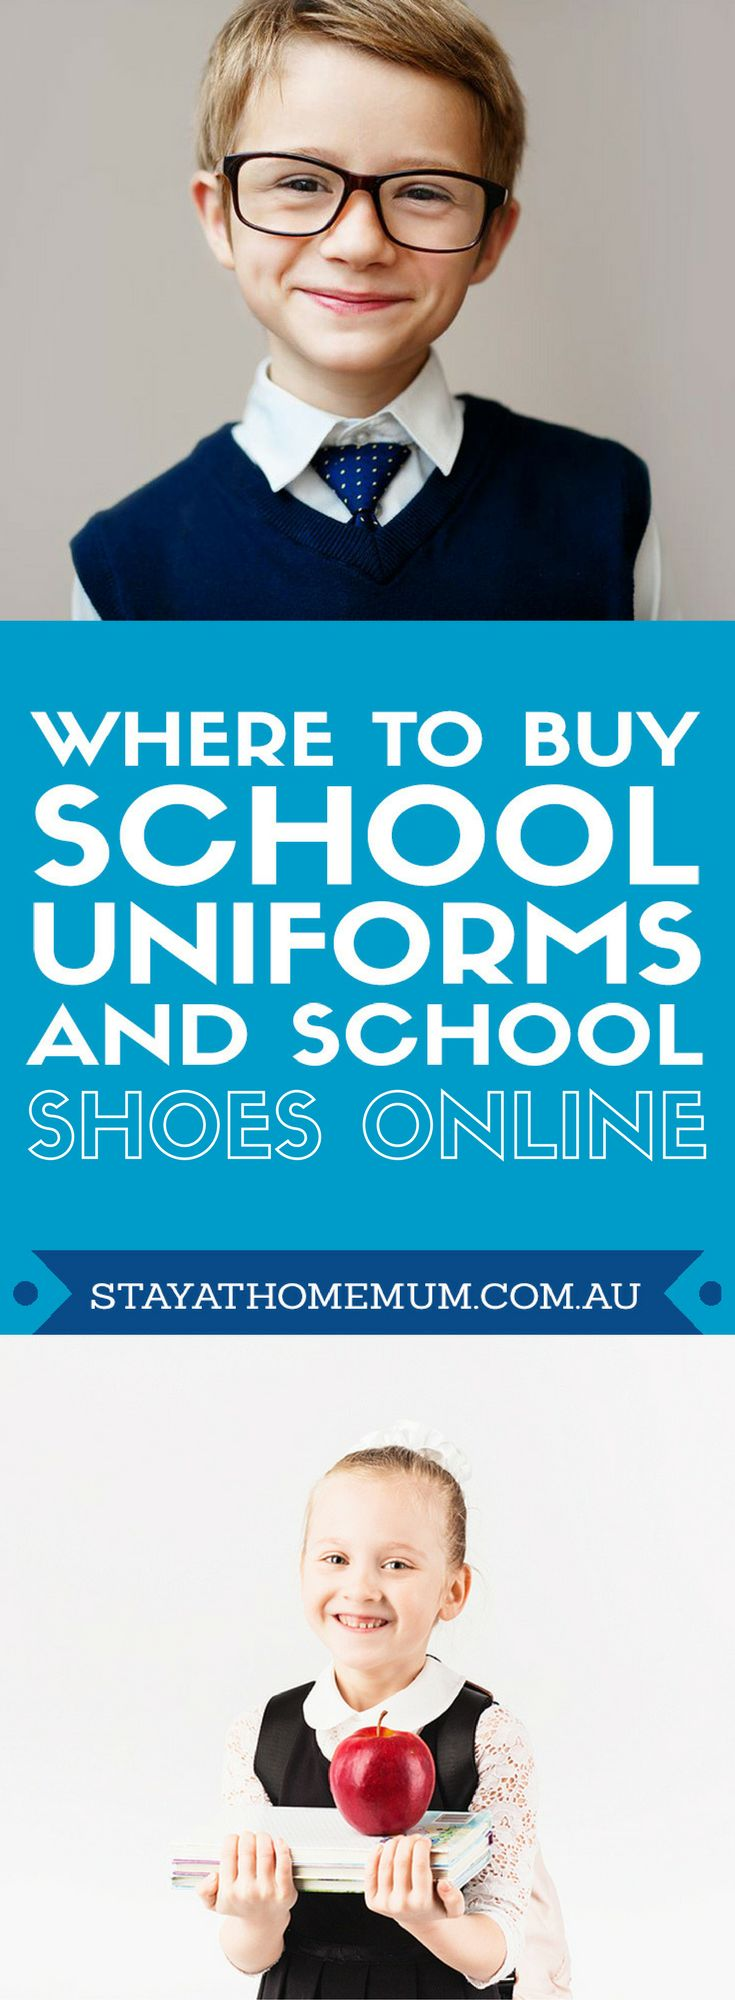 Where to Buy School Uniforms and School Shoes Online - Stay at Home Mum